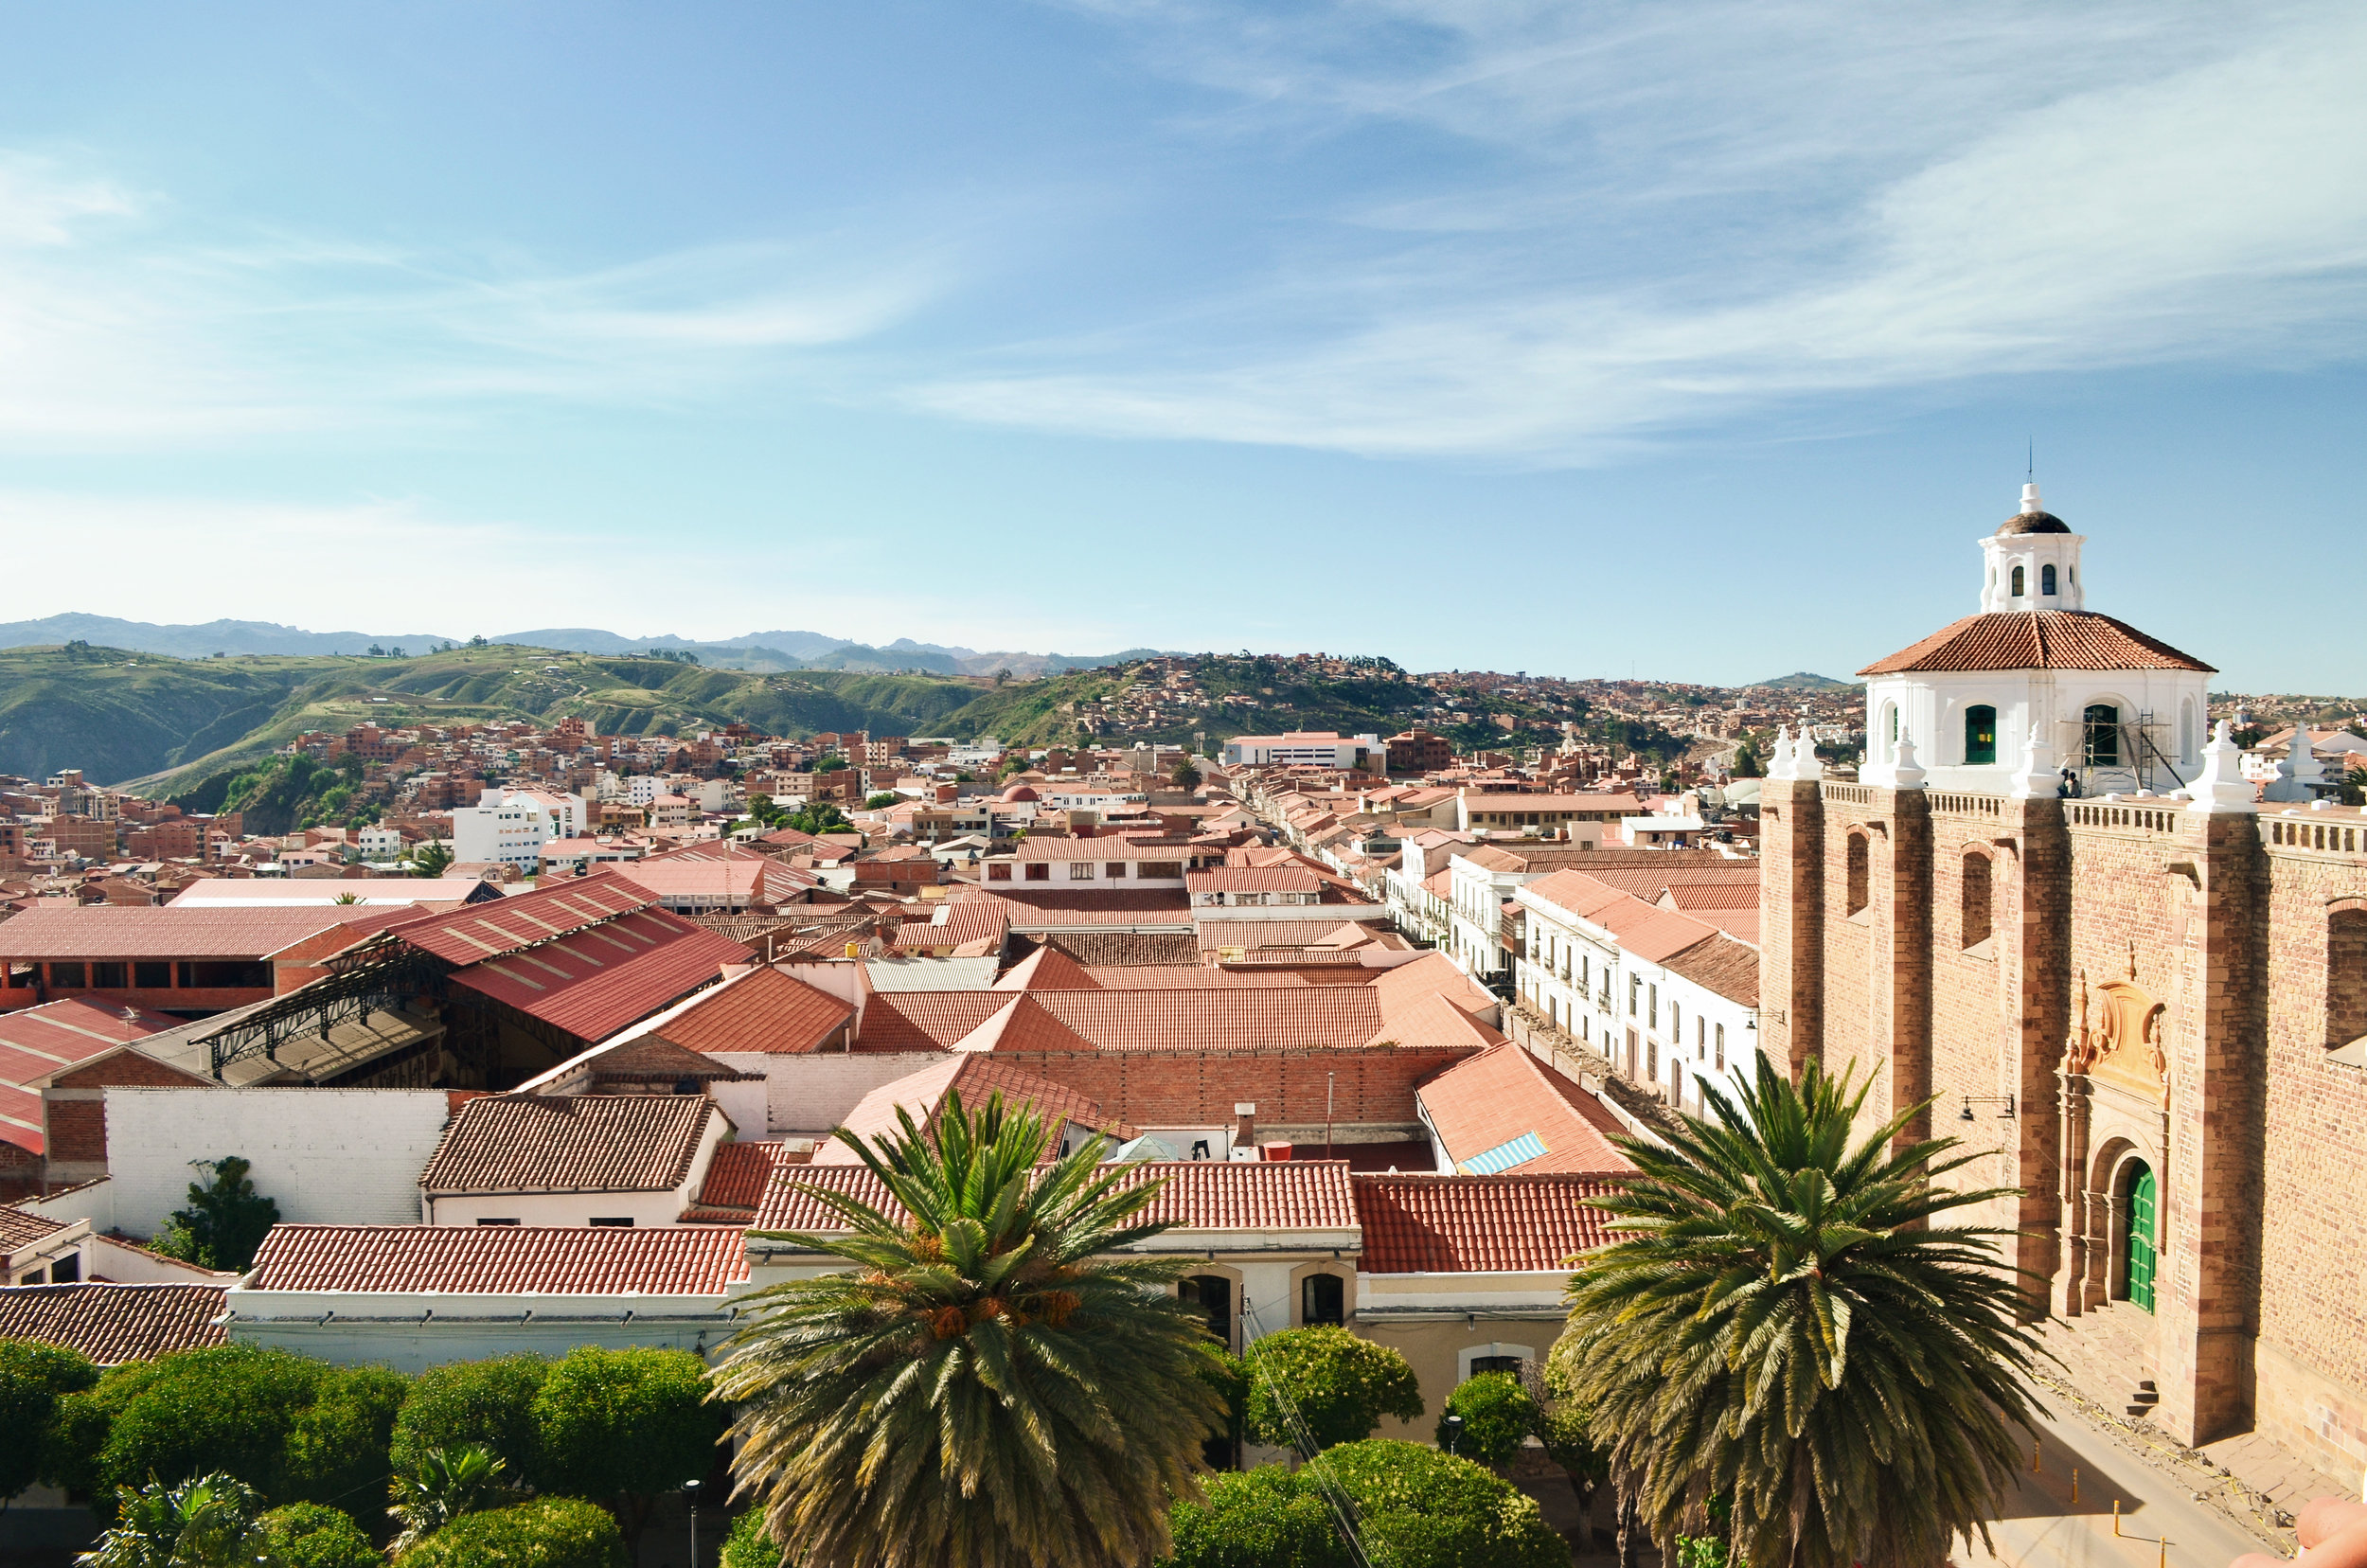 The white city of Sucre